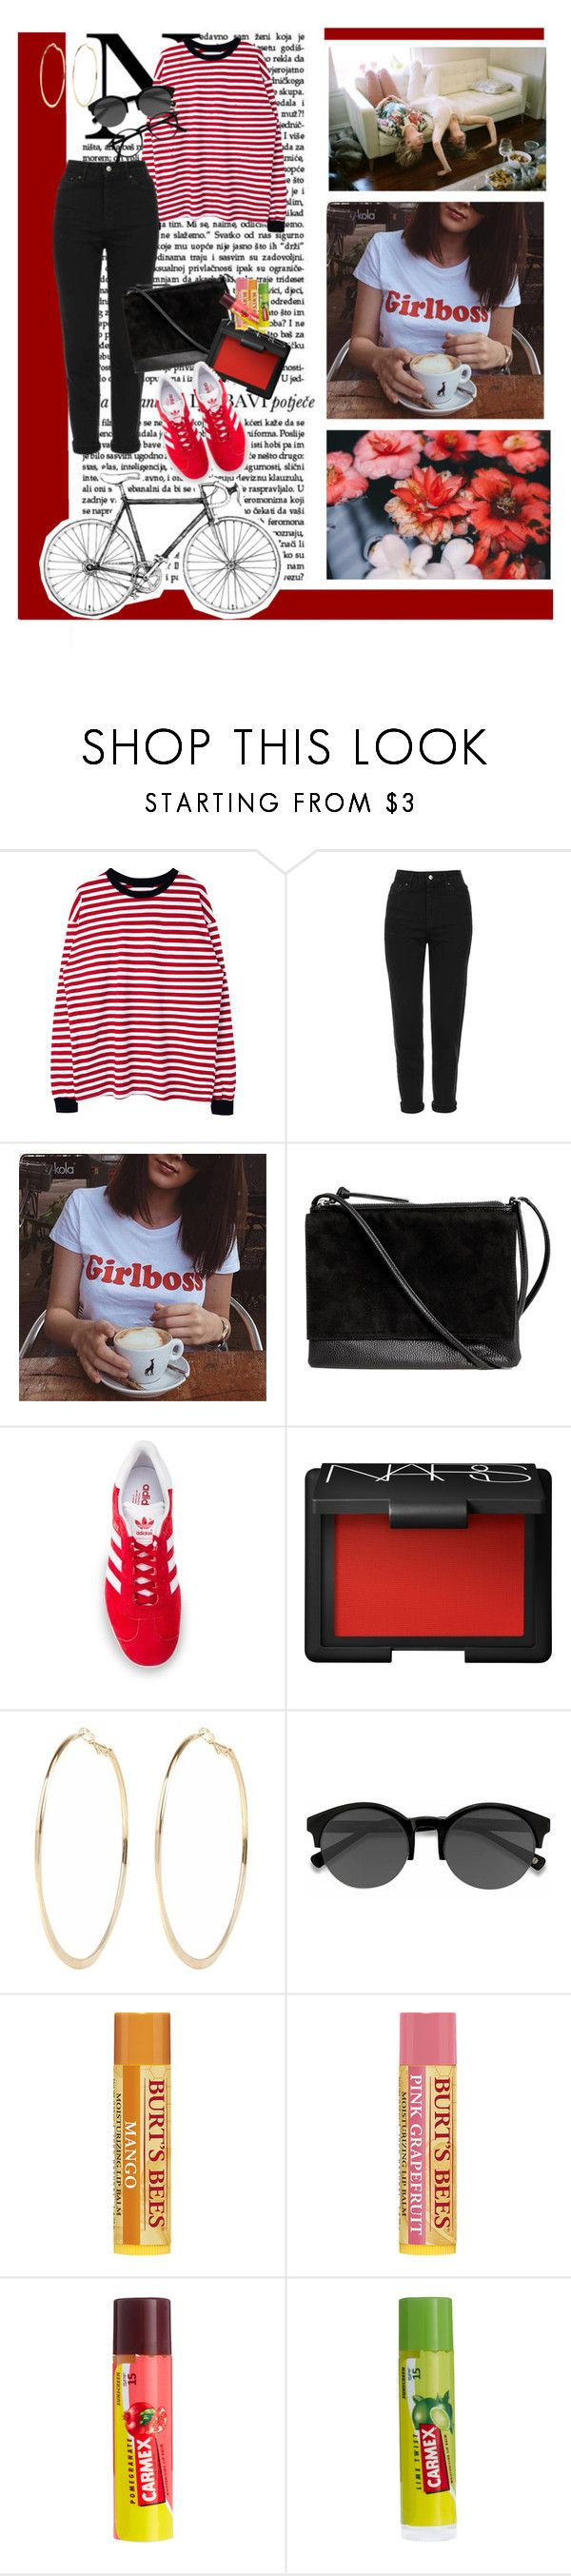 """Untitled #1223"" by my-pretty-pony ❤ liked on Polyvore featuring Lauren Ralph Lauren, Topshop, Berta, H&M, adidas Originals, NARS Cosmetics, River Island, EyeBuyDirect.com, Carmex and summerstyle"